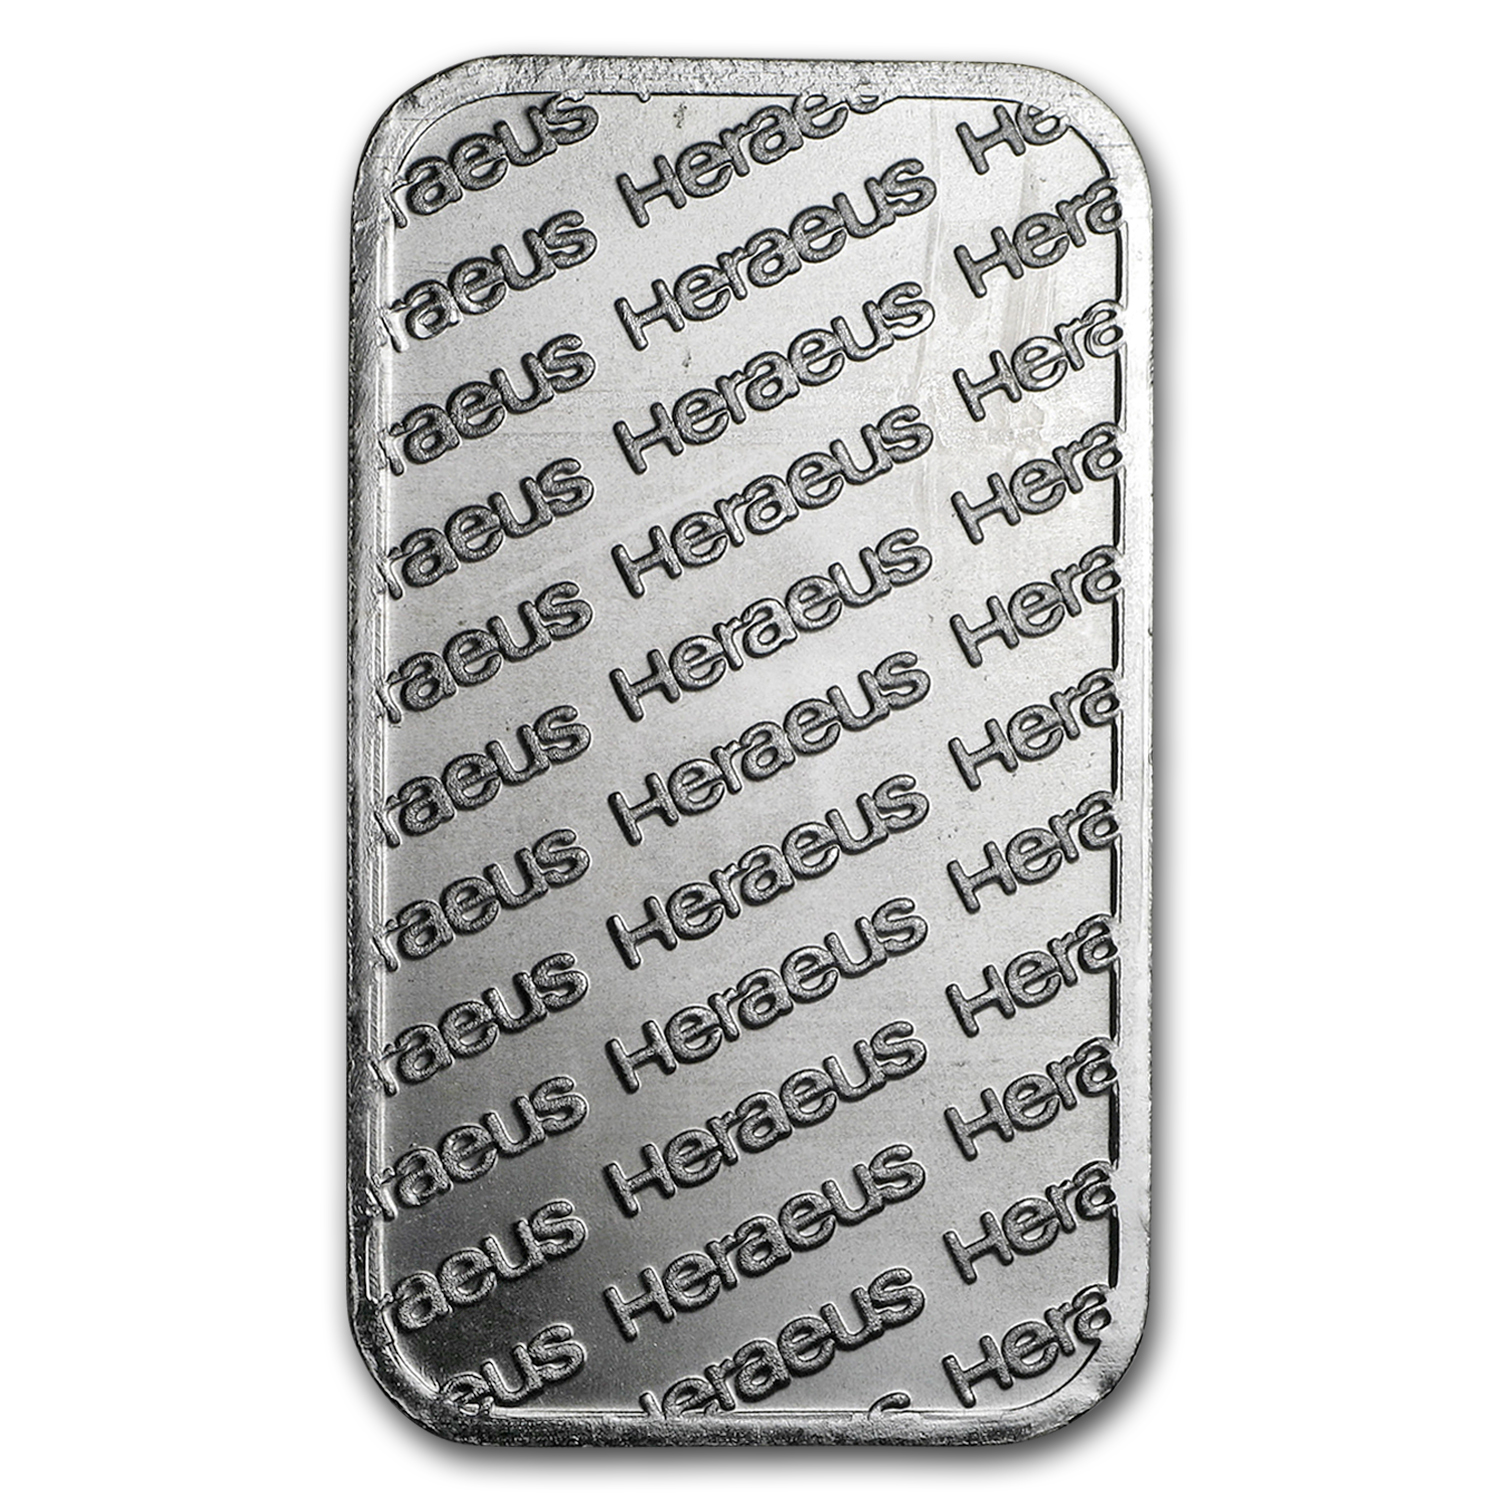 1 oz Silver Bars - Heraeus (Secondary Market)